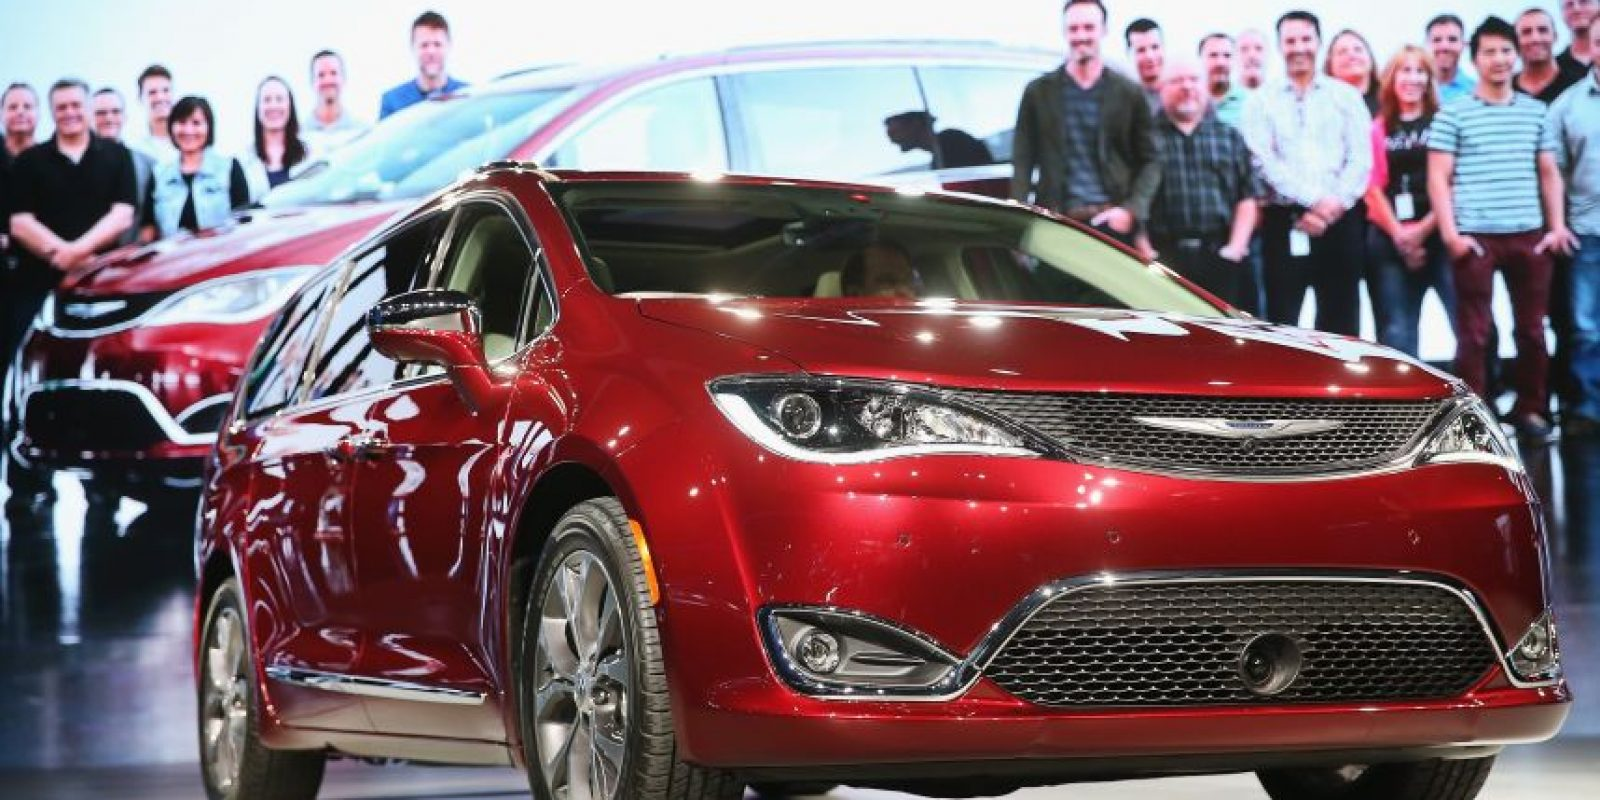 Chrysler Pacifica Foto: Getty